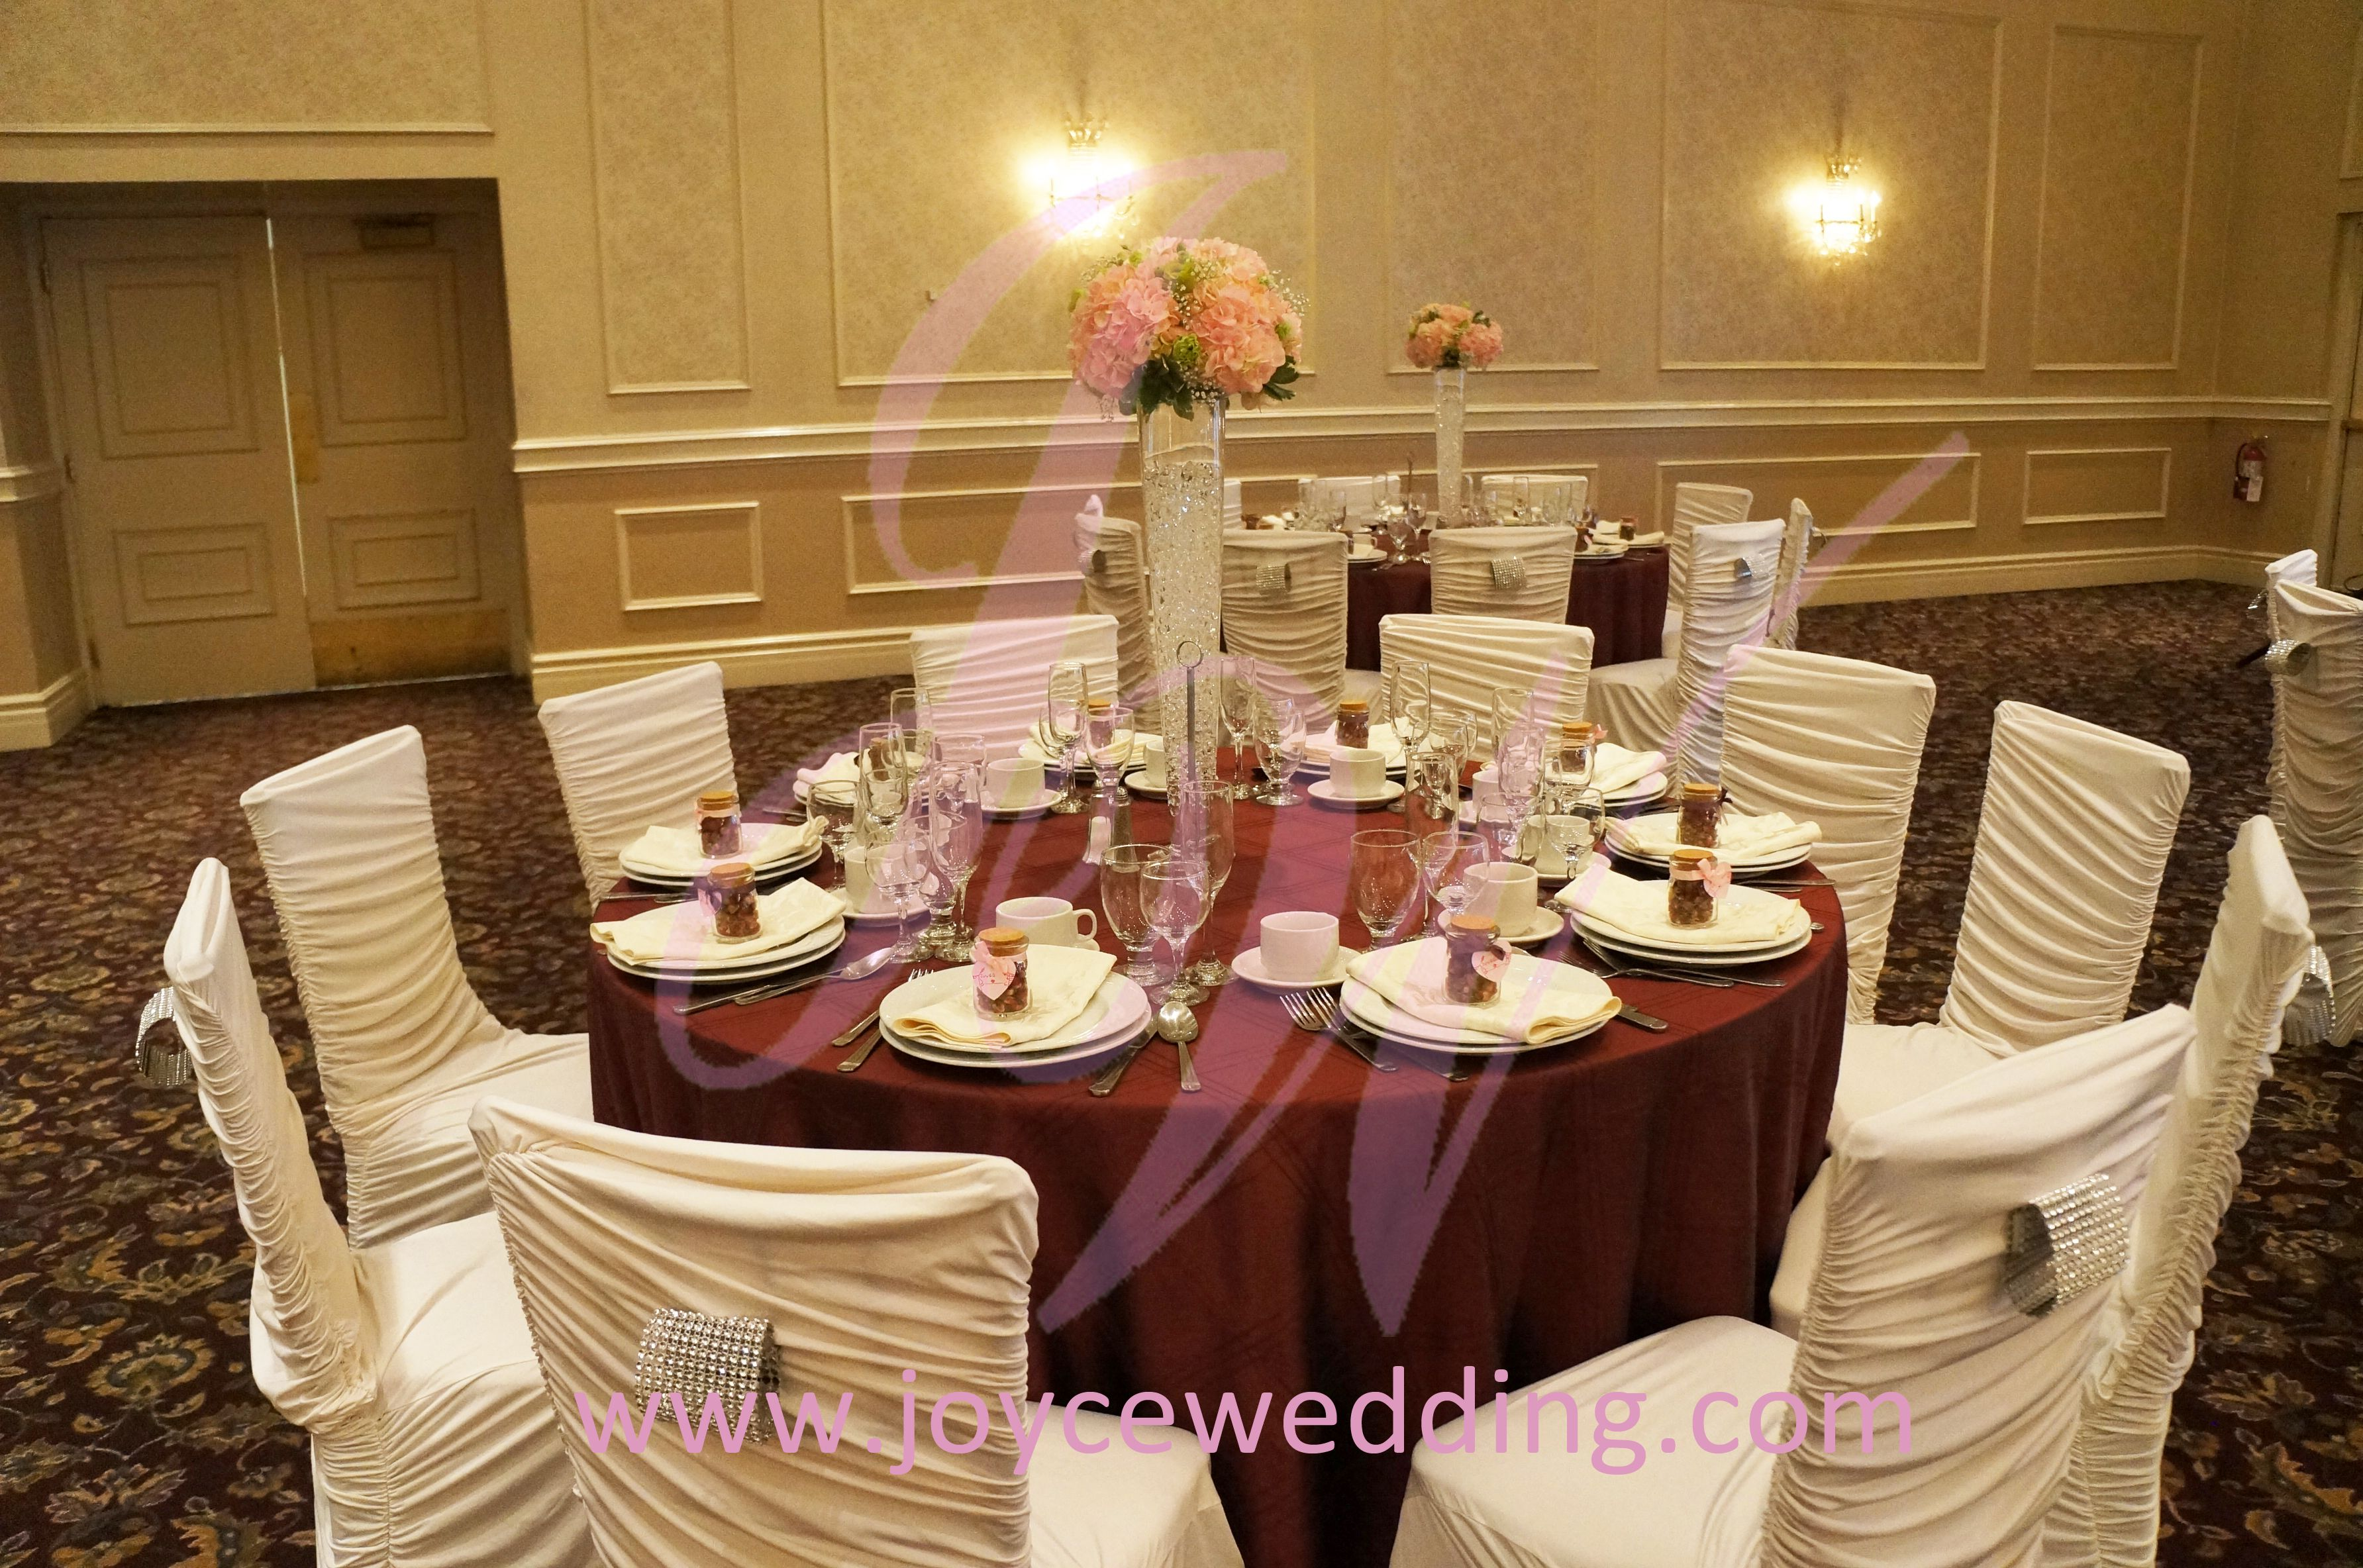 burgundy chair covers wedding rubber tips for chairs pink red and white decoration weddings